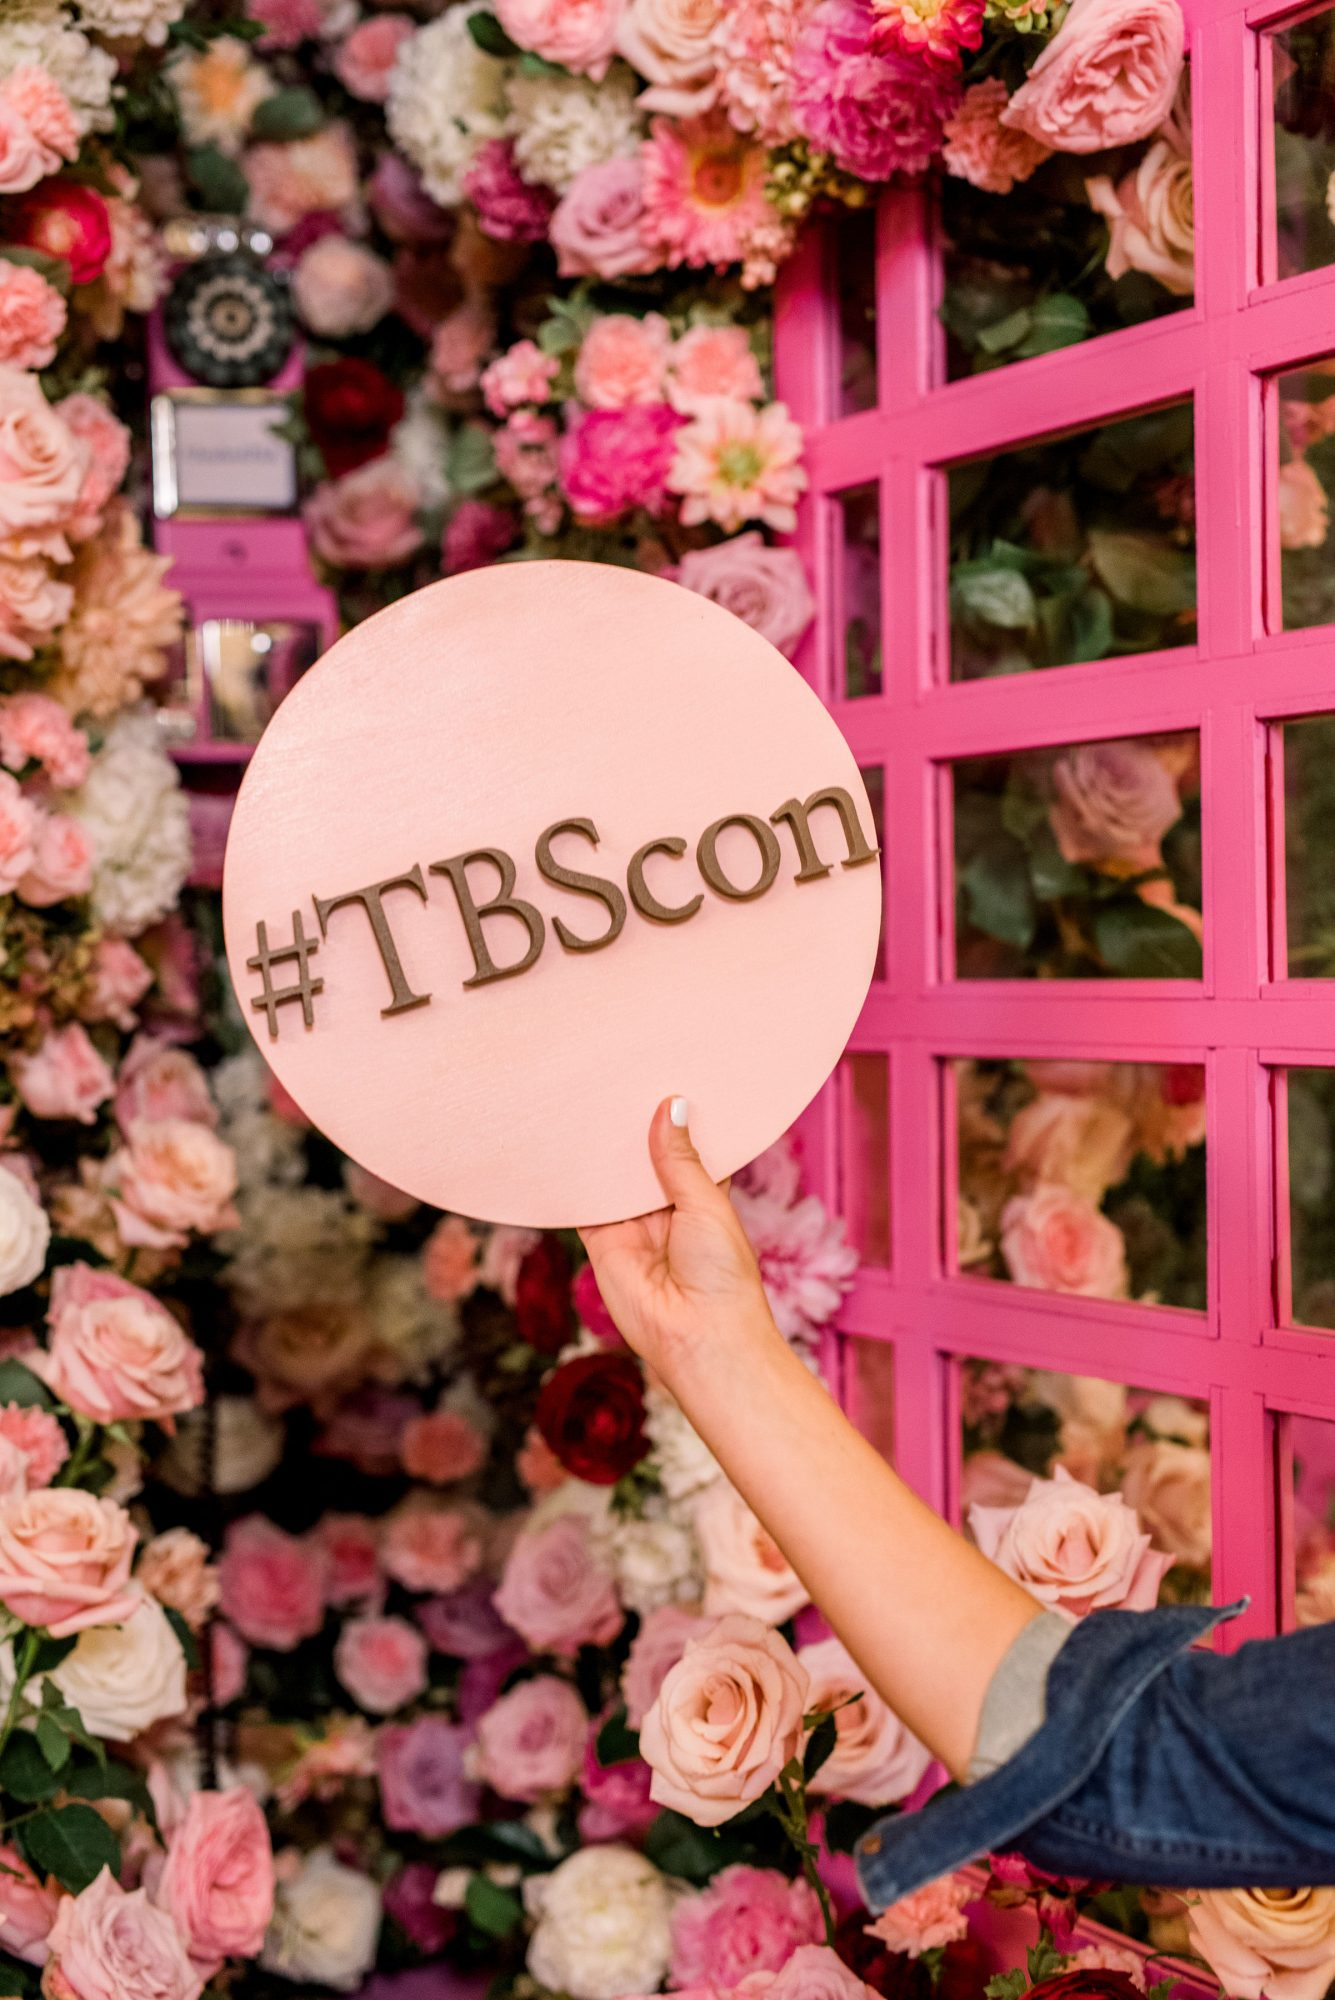 The 7th Annual Blog Societies Conference In Atlanta - The Blog Societies #TBScon